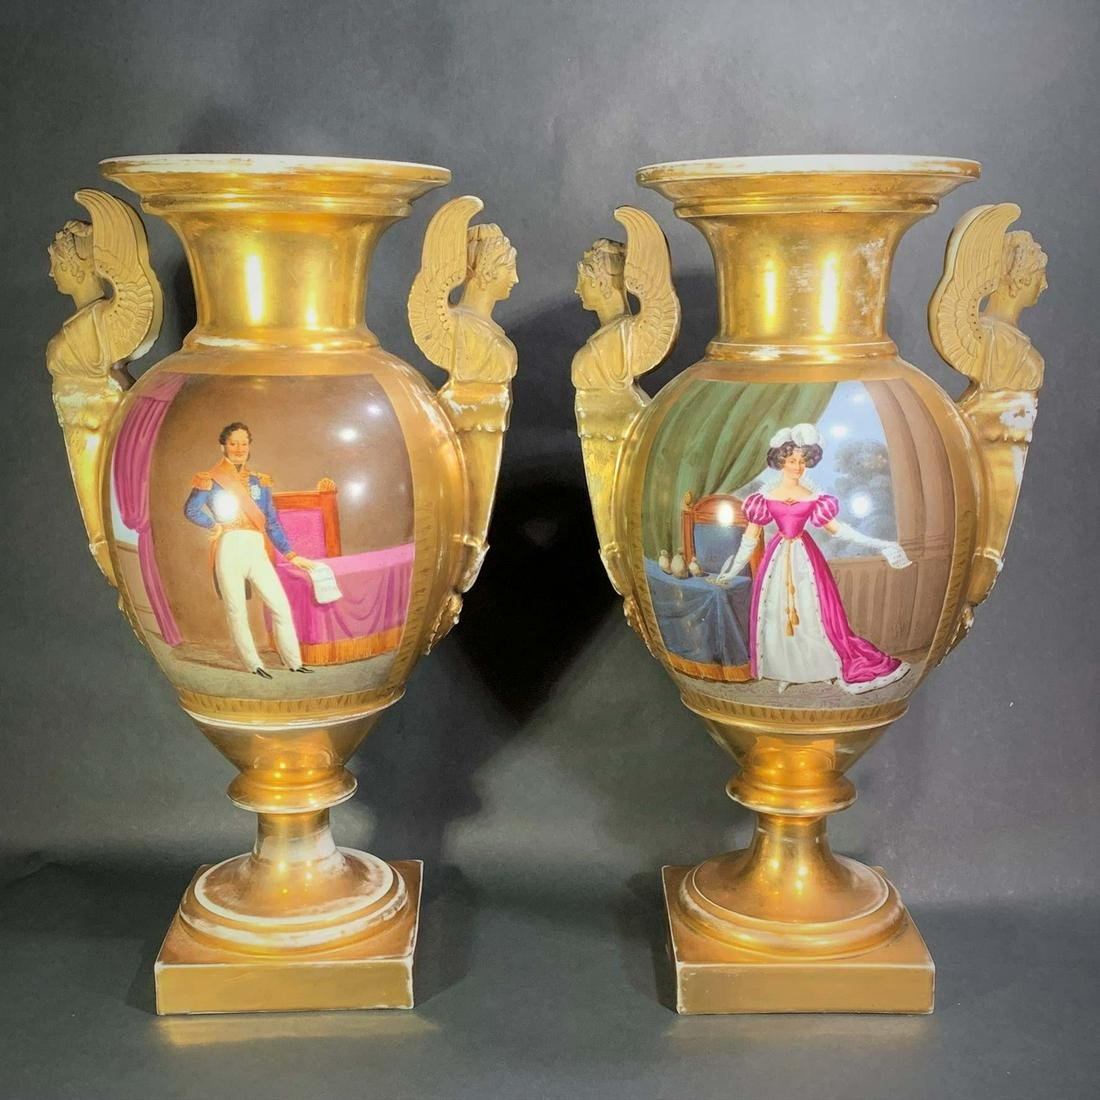 19th C. French Empire Style Urns